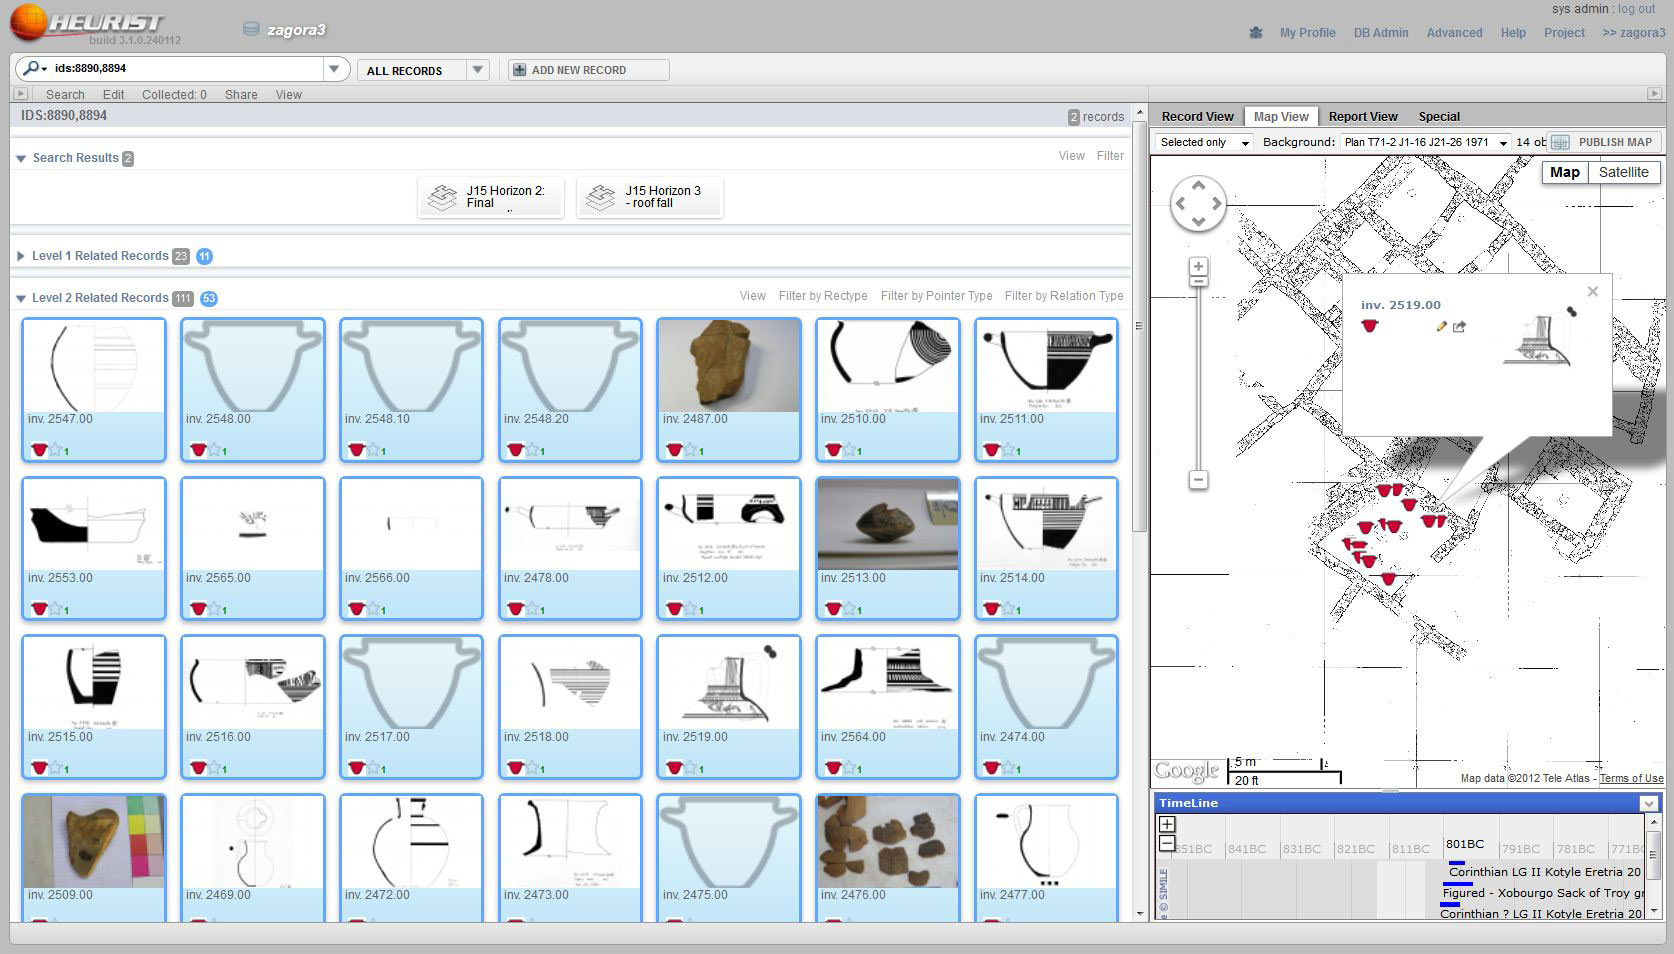 Heurist screenshot of J15 artefacts